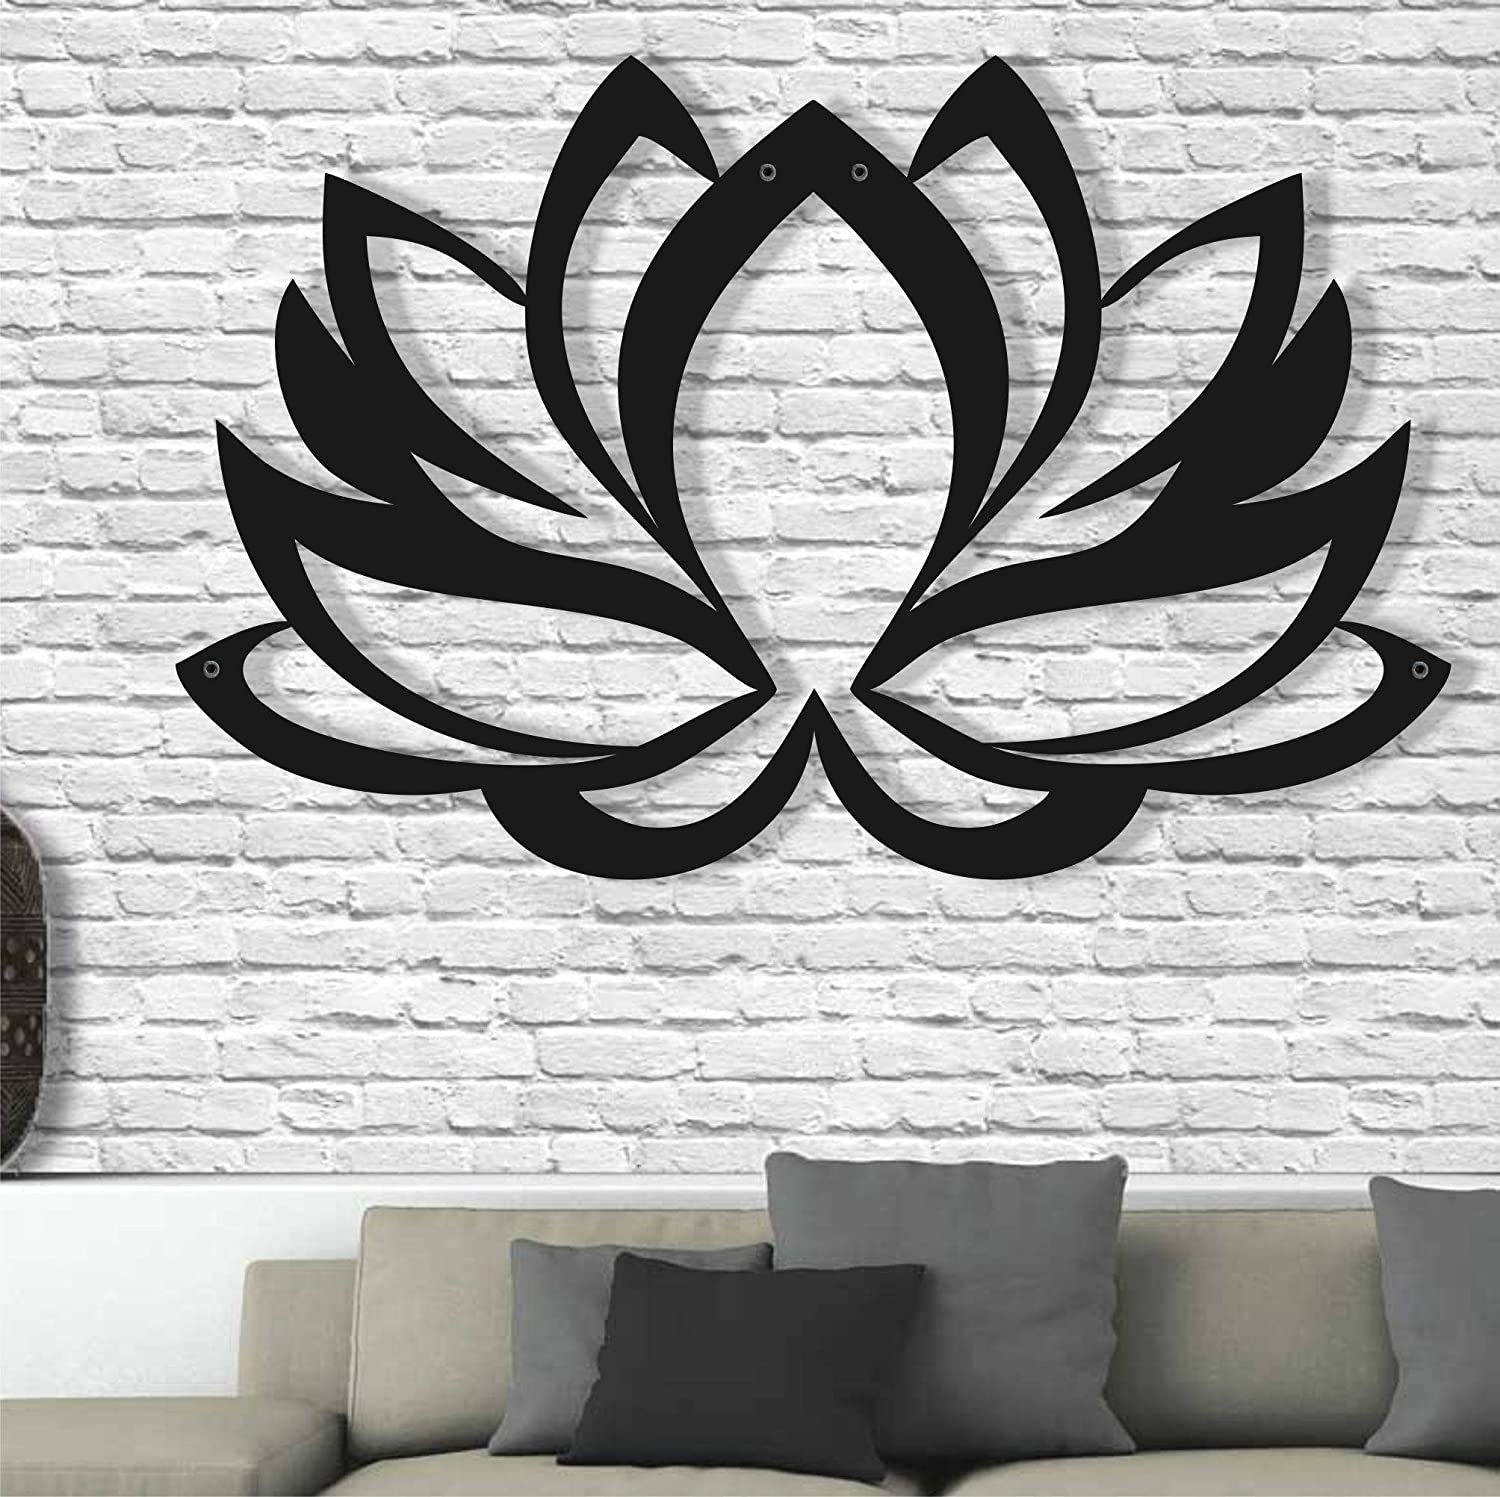 Amazon Com Metal Wall Art Lotus Flower 3d Wall Silhouette Metal Wall Decor Home Office Decoration Bedroom Living Room Decor Sculpture 18 W X 12 H 46x31cm Everything Else